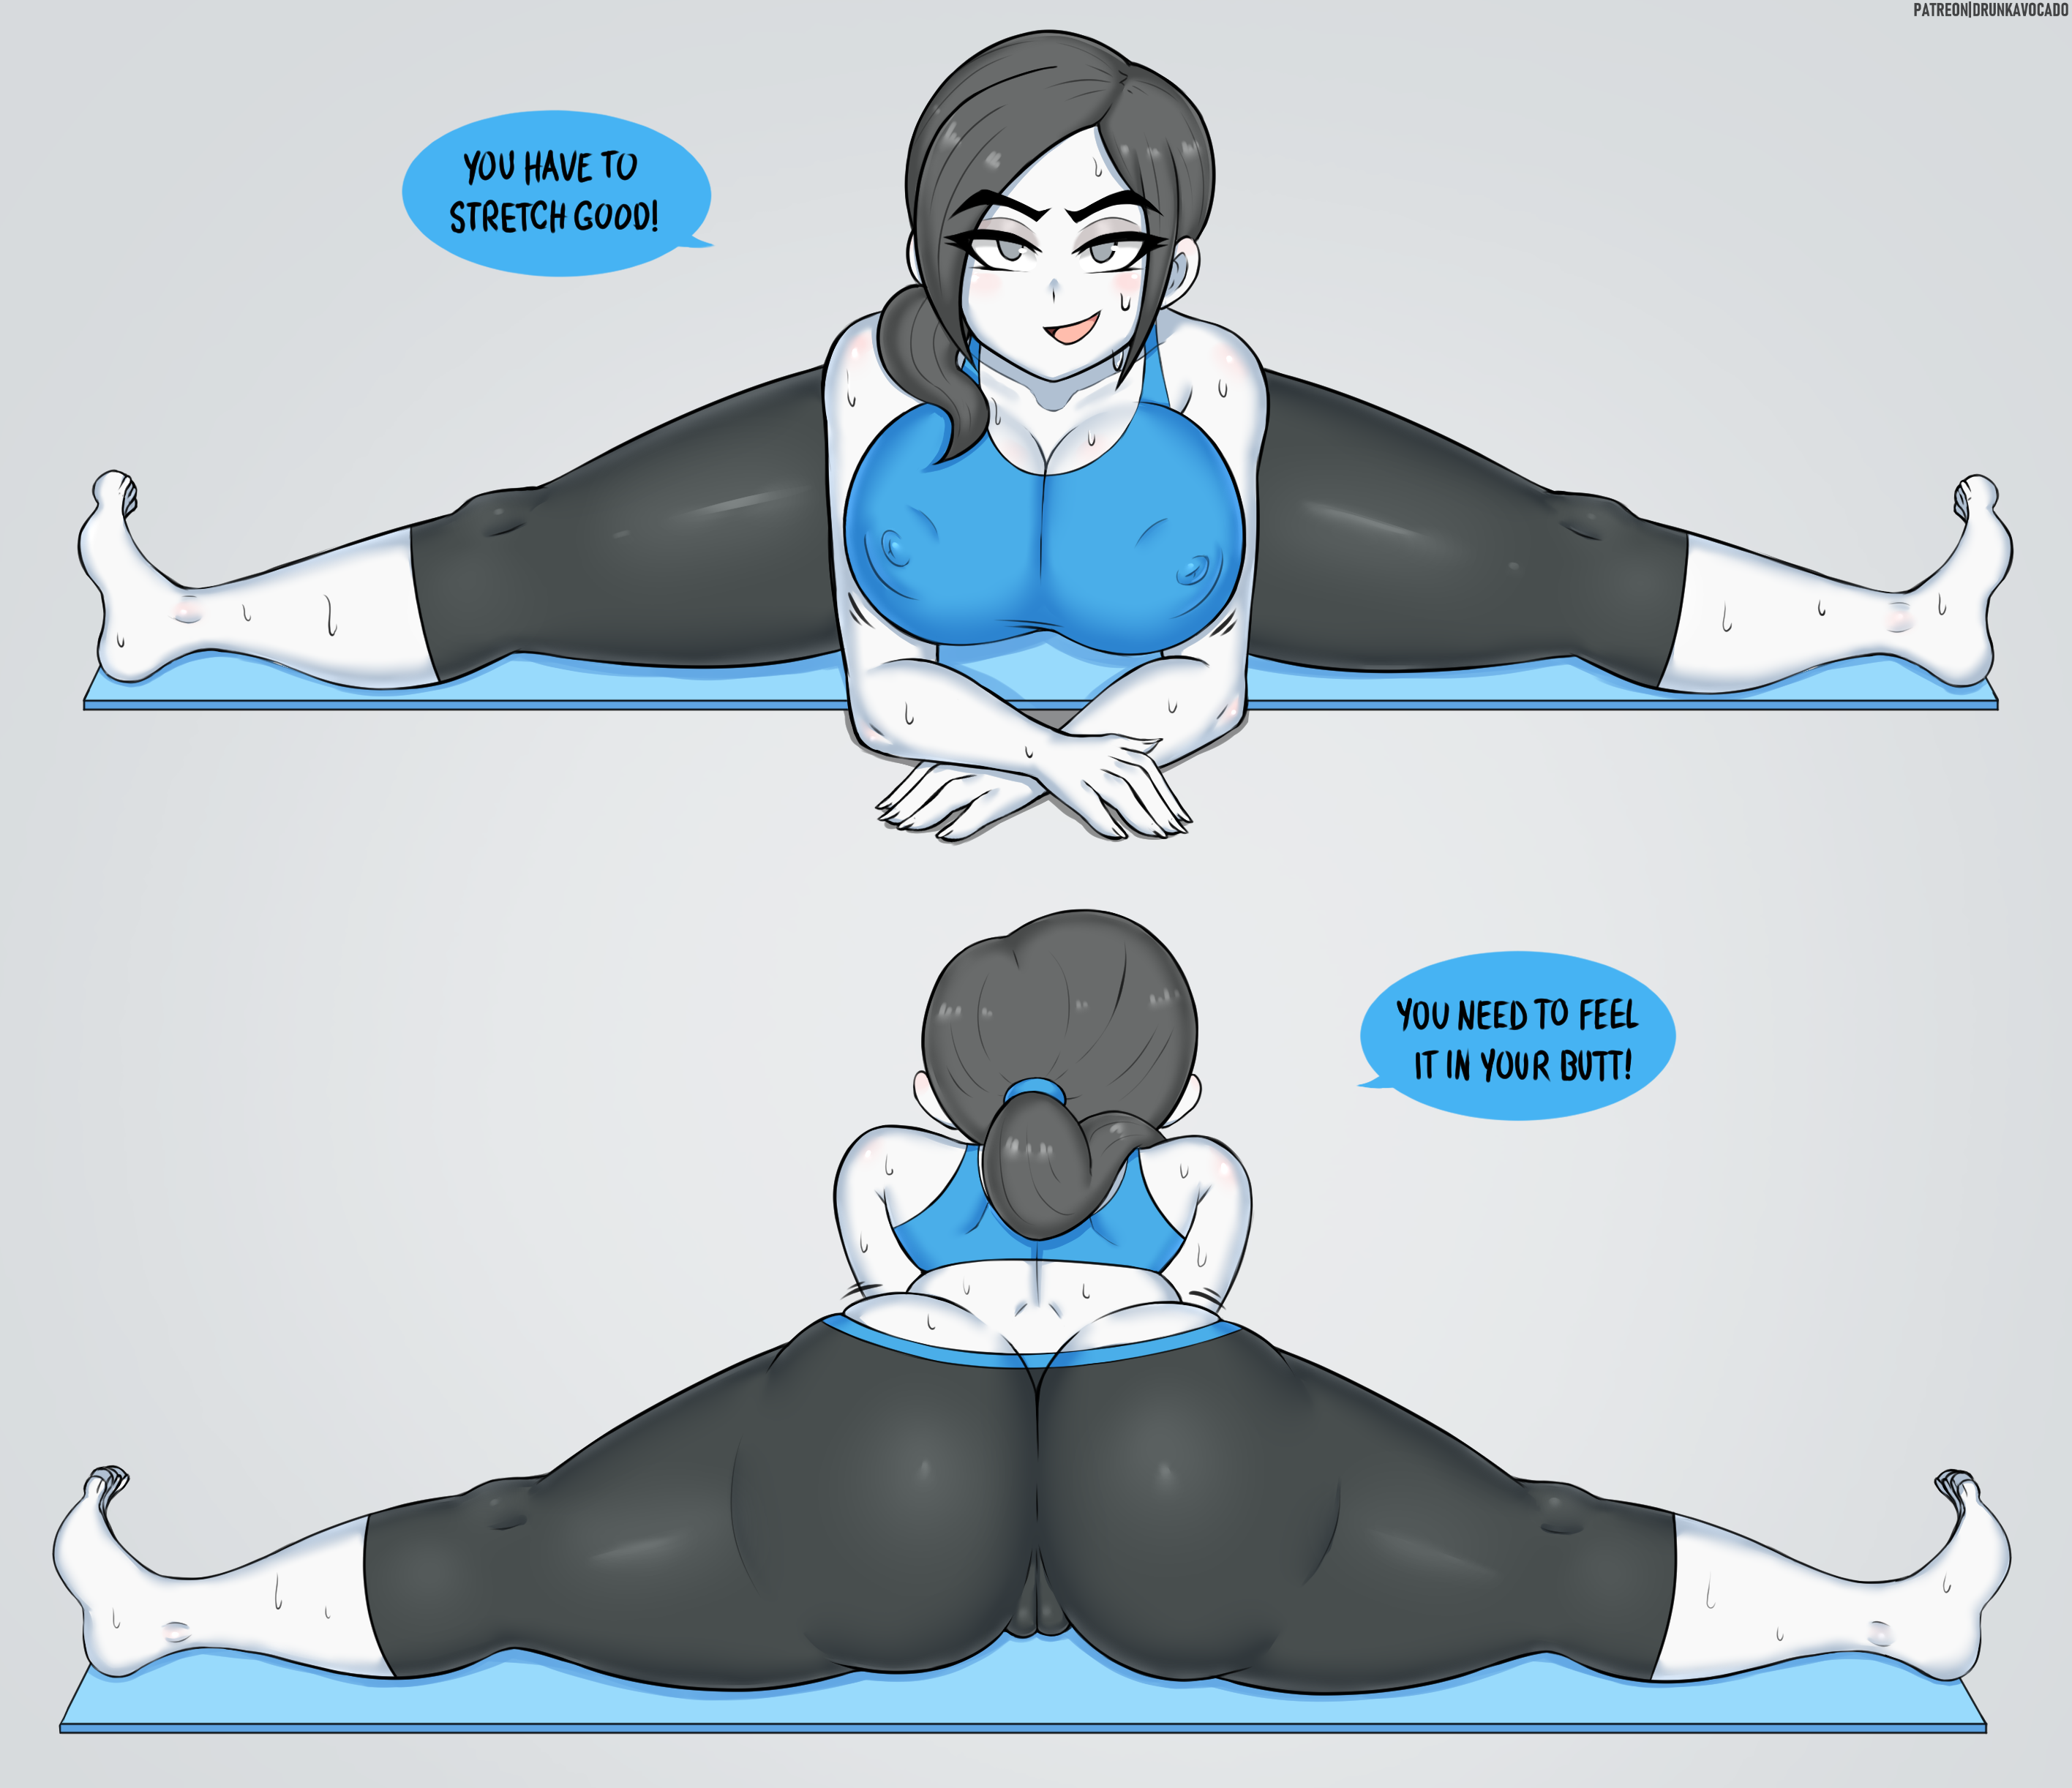 Wii Fit Trainer stretching lesson